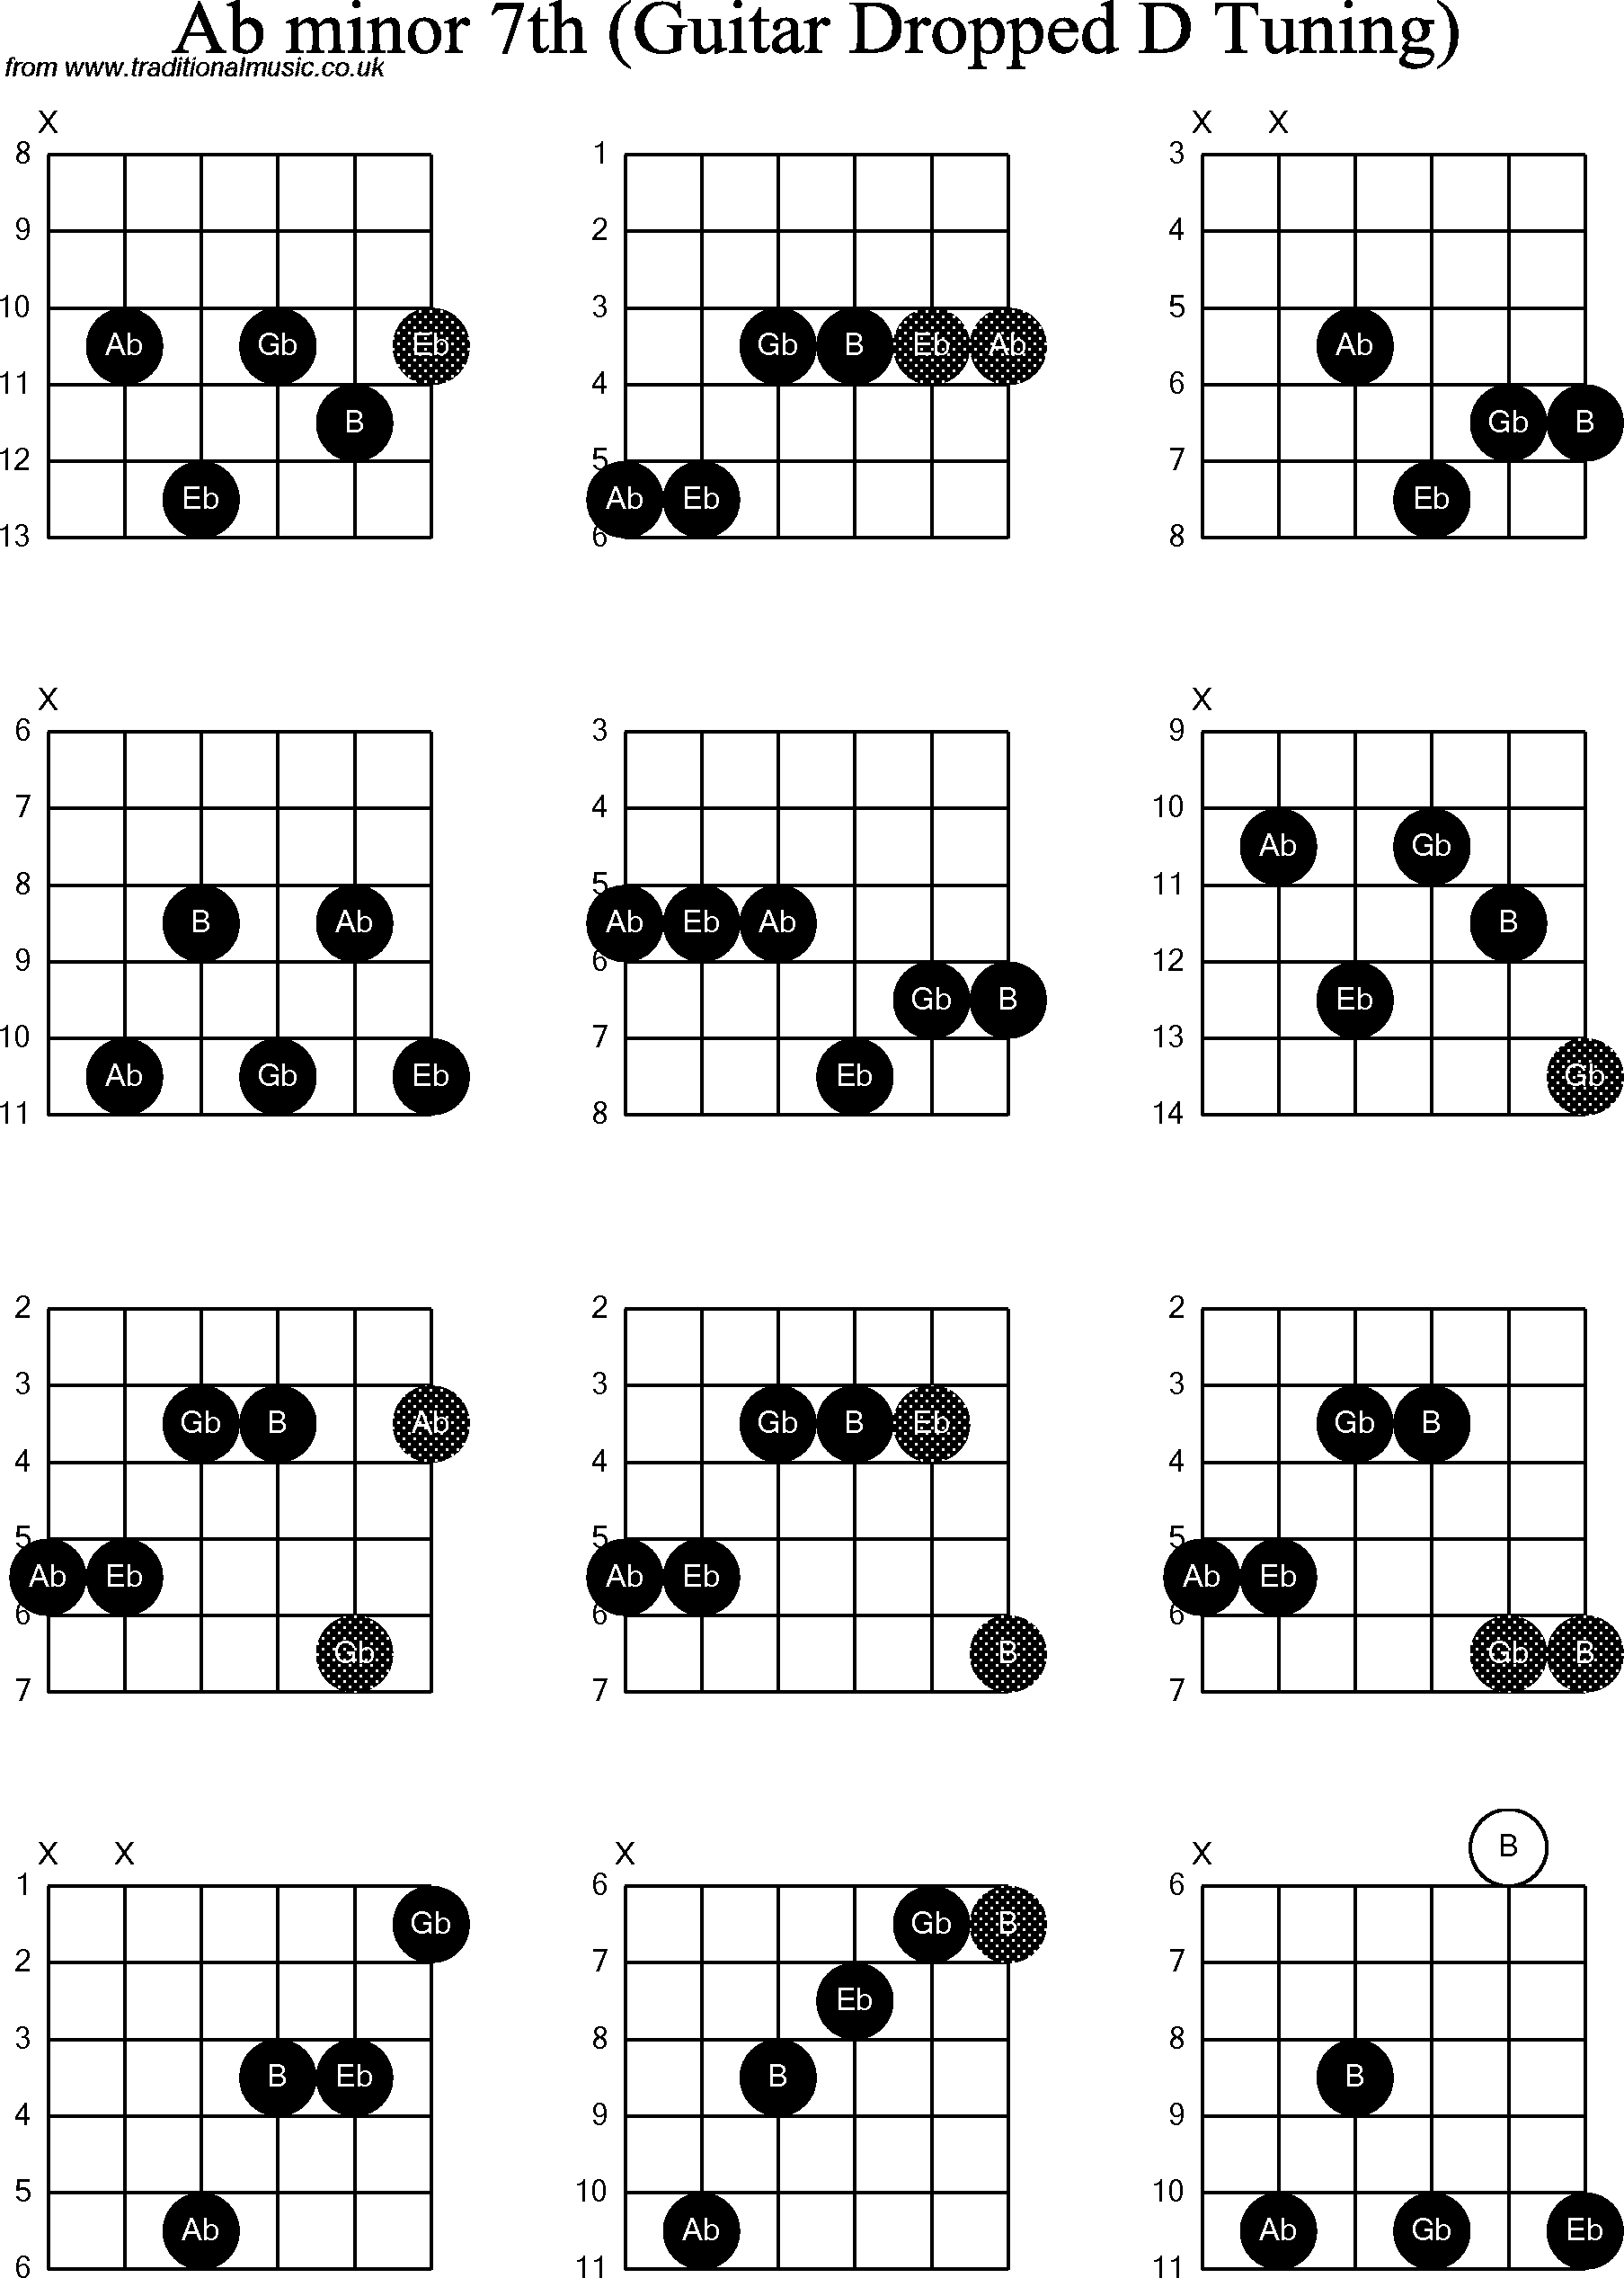 Chord Diagrams For Dropped D Guitardadgbe Ab Minor7th